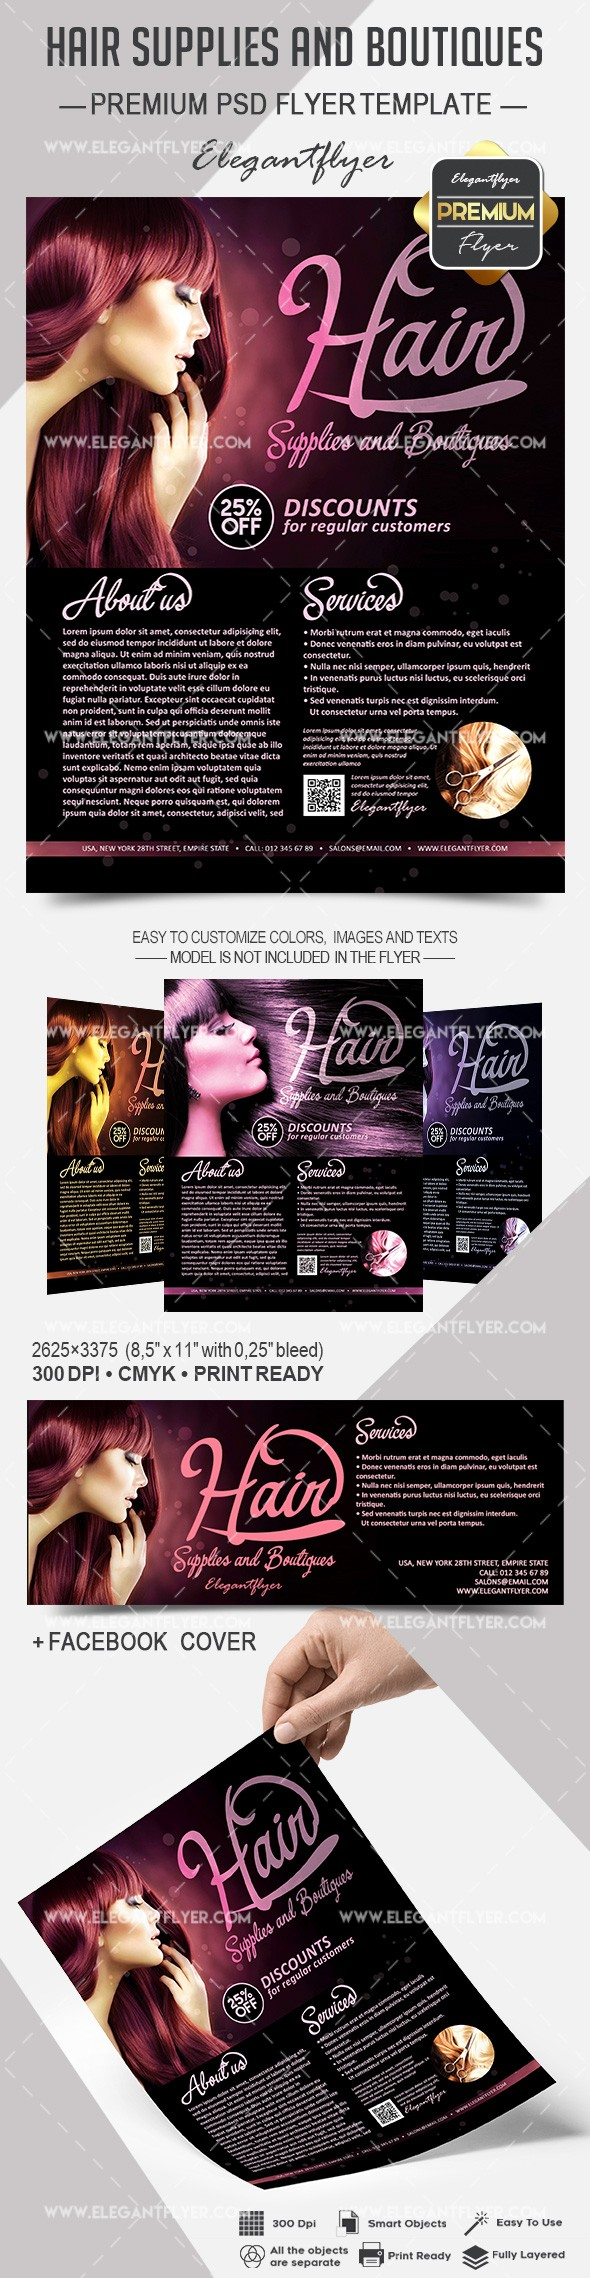 Hair Supplies and Boutiques – Flyer PSD Template